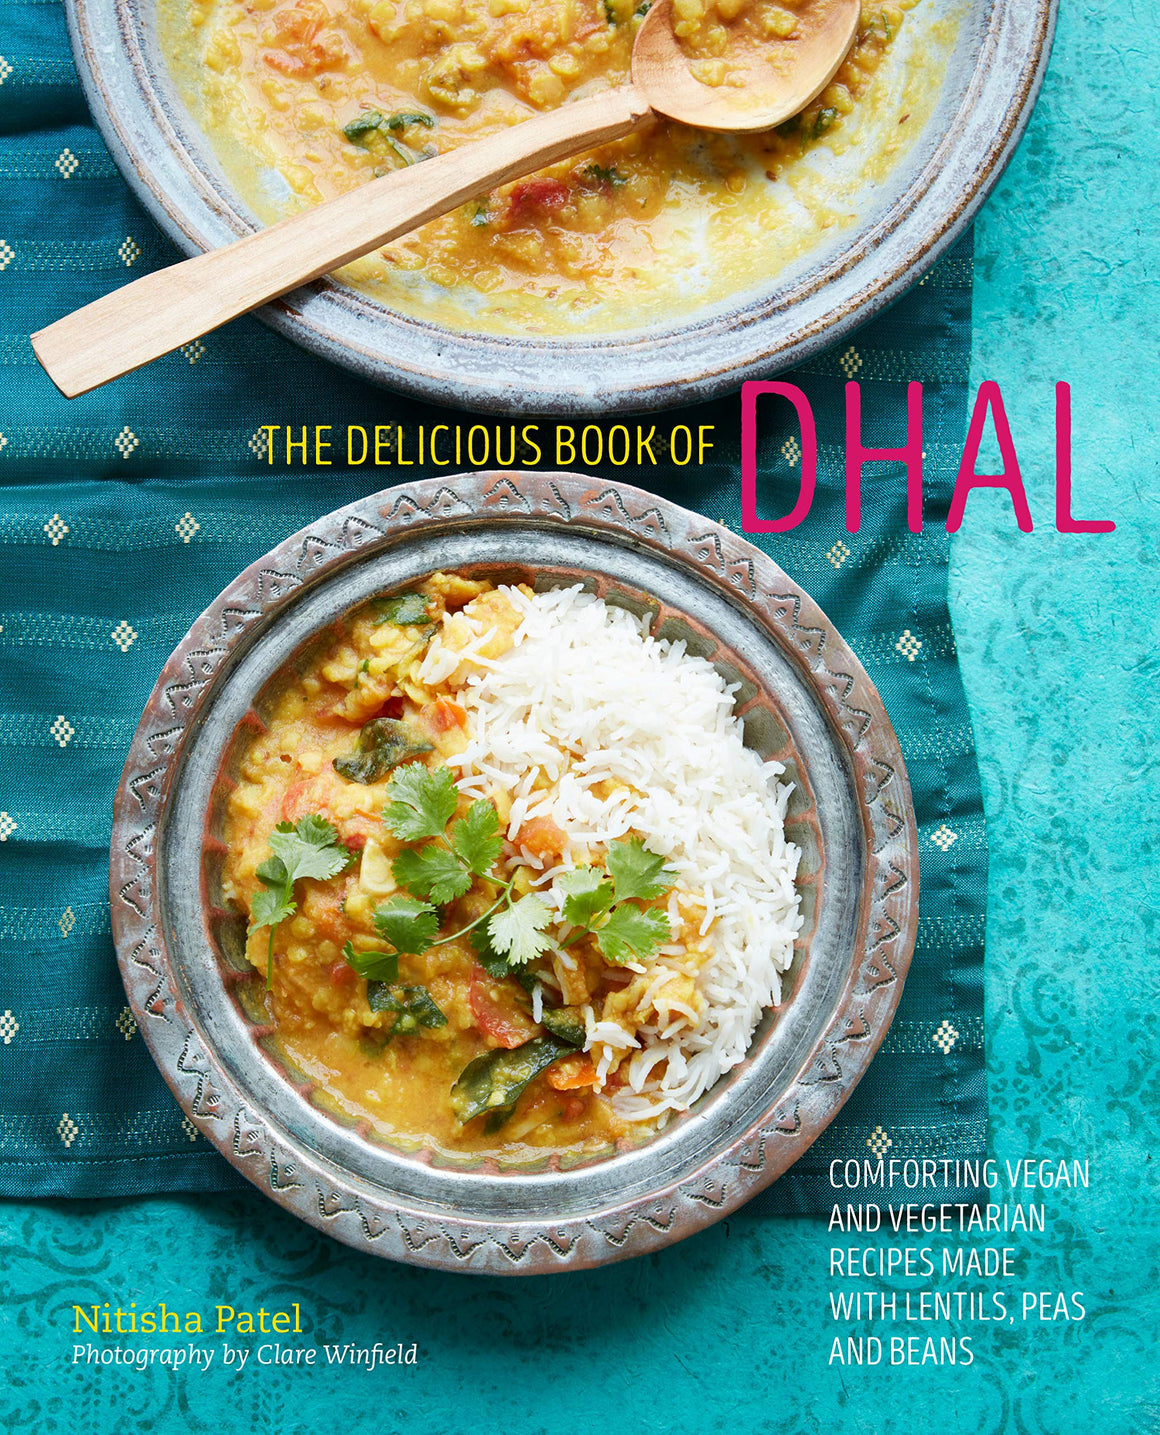 (Indian) Nitisha Patel. The Delicious Book of Dhal: Comforting vegan and vegetarian recipes made with lentils, peas and beans.